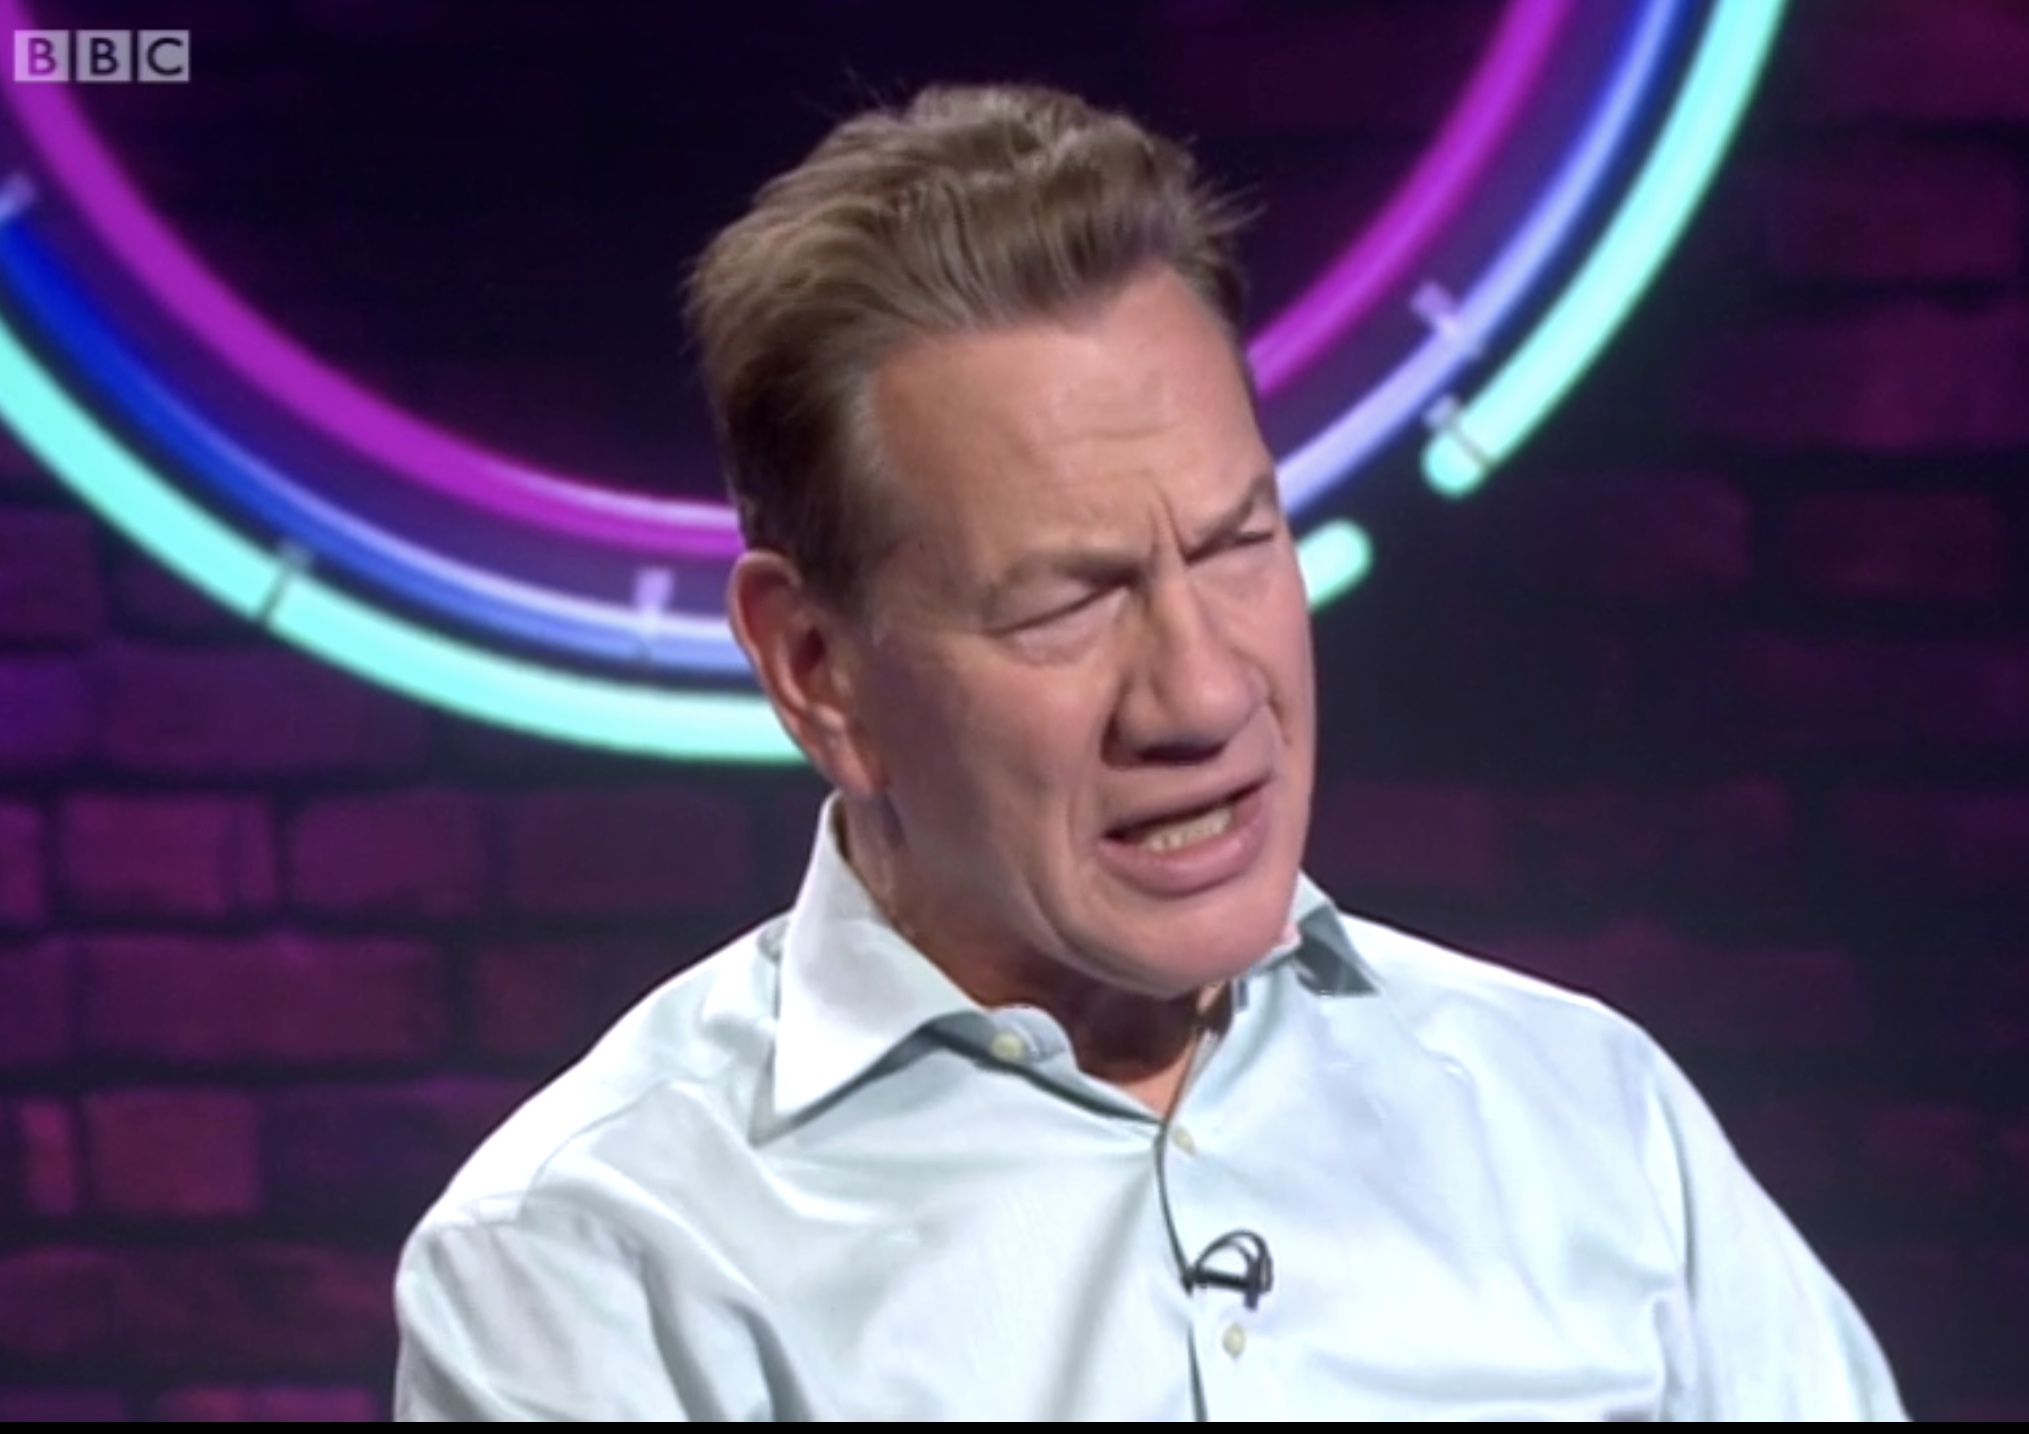 Michael Portillo on BBC's This Week programme